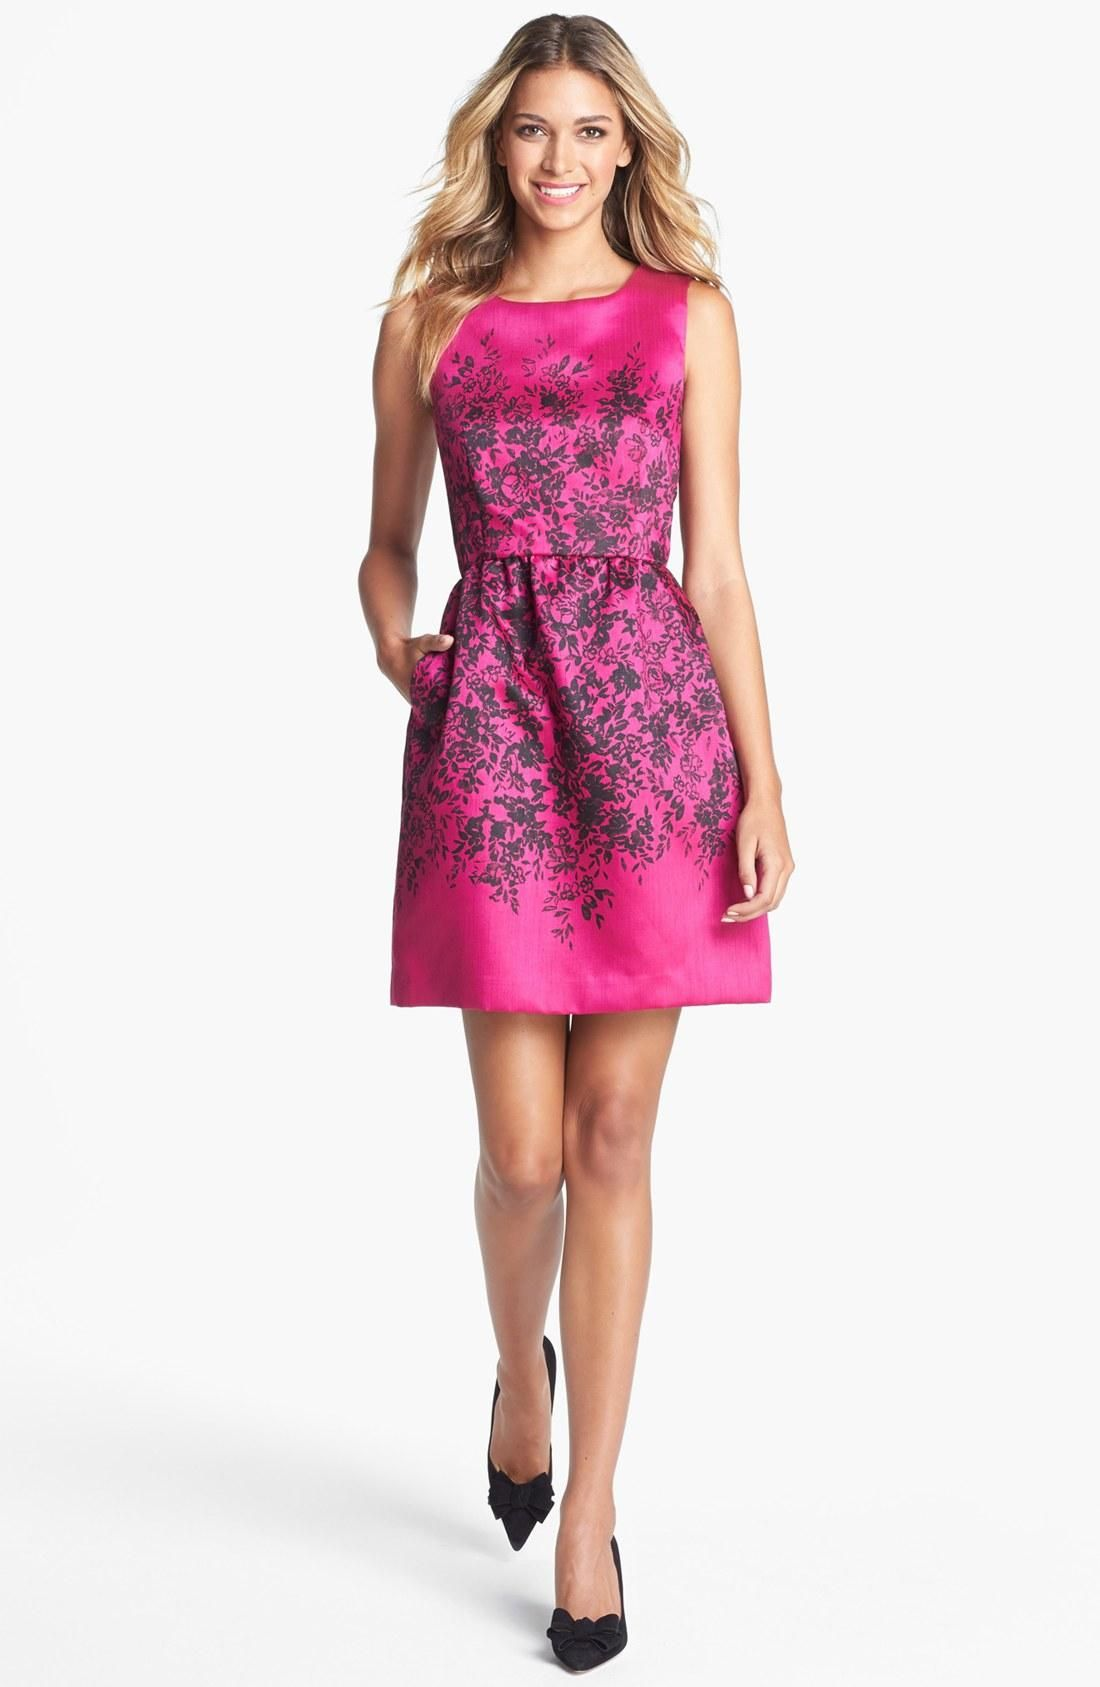 Cool floral print on fuchsia - love for bridesmaids! | Fashion ...